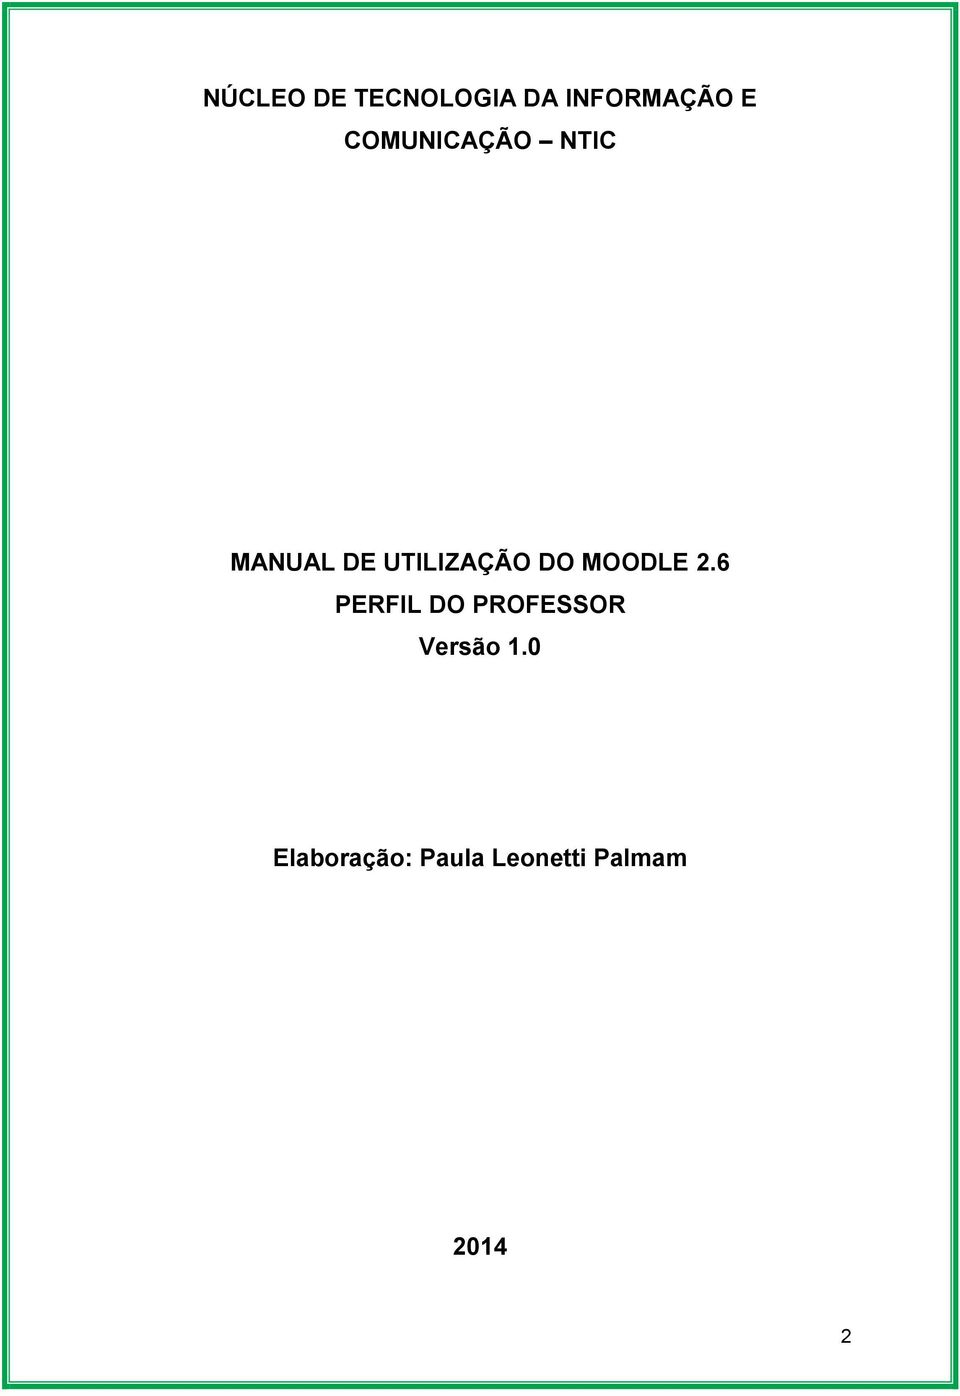 DO MOODLE 2.